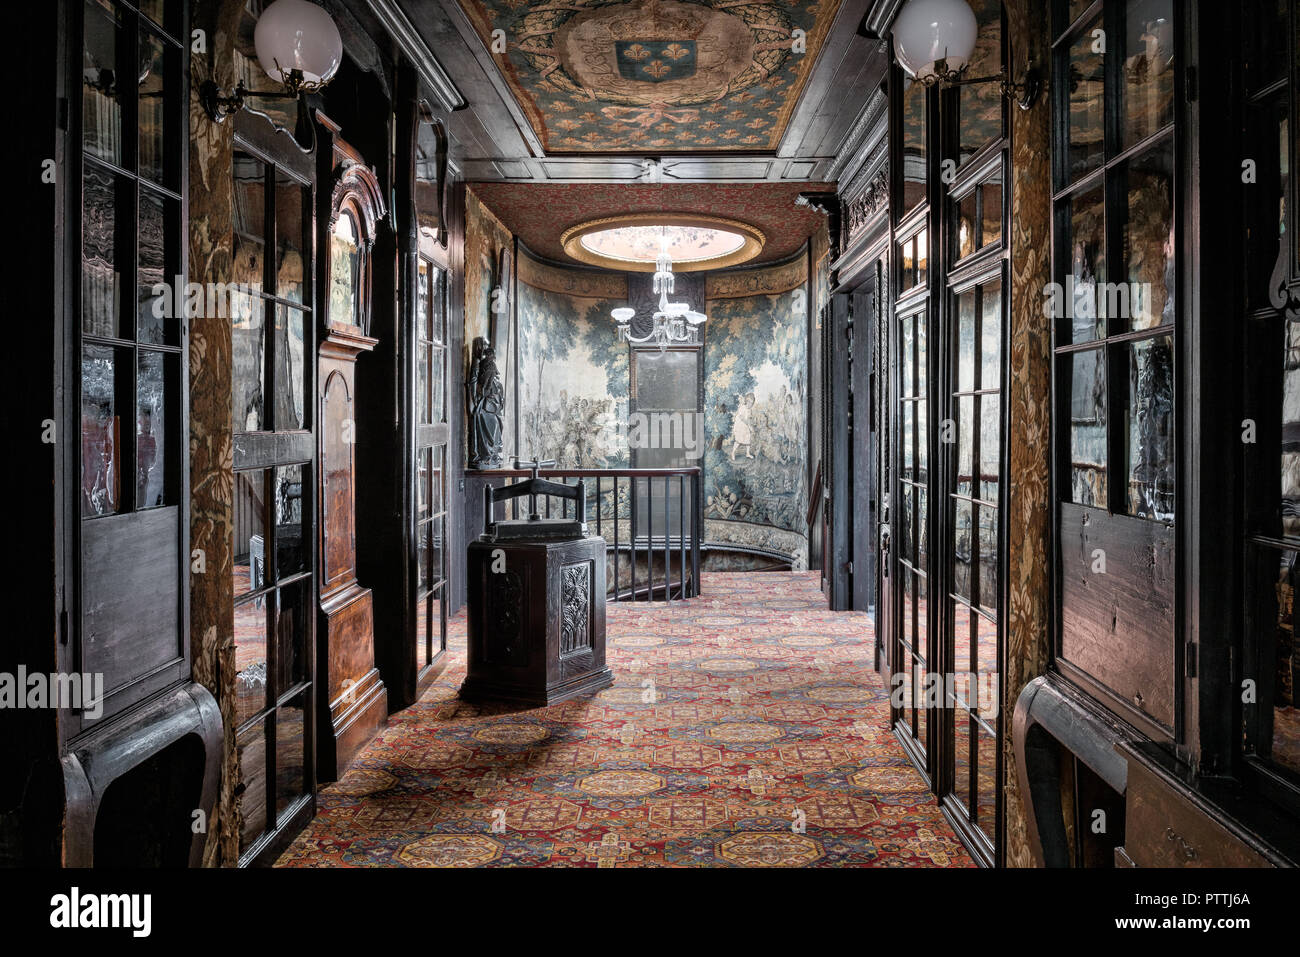 Oak gallery with tapstery ceilings on upper floors of Hauteville House - Stock Image